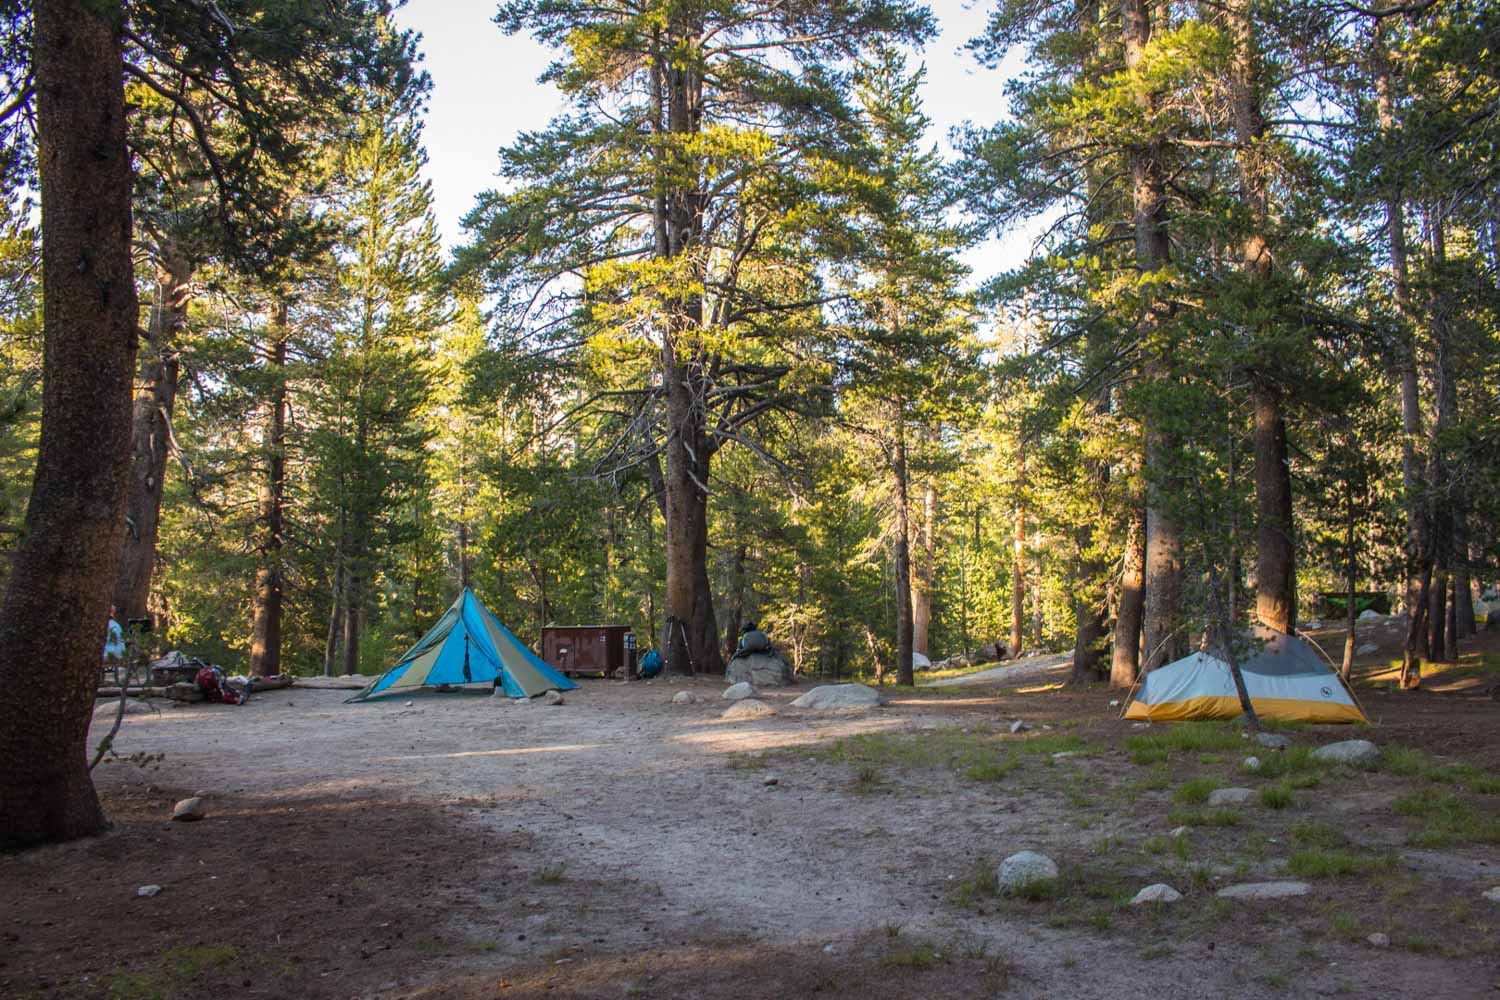 two tents set up in a wooded Tuolumne Meadows Campsite